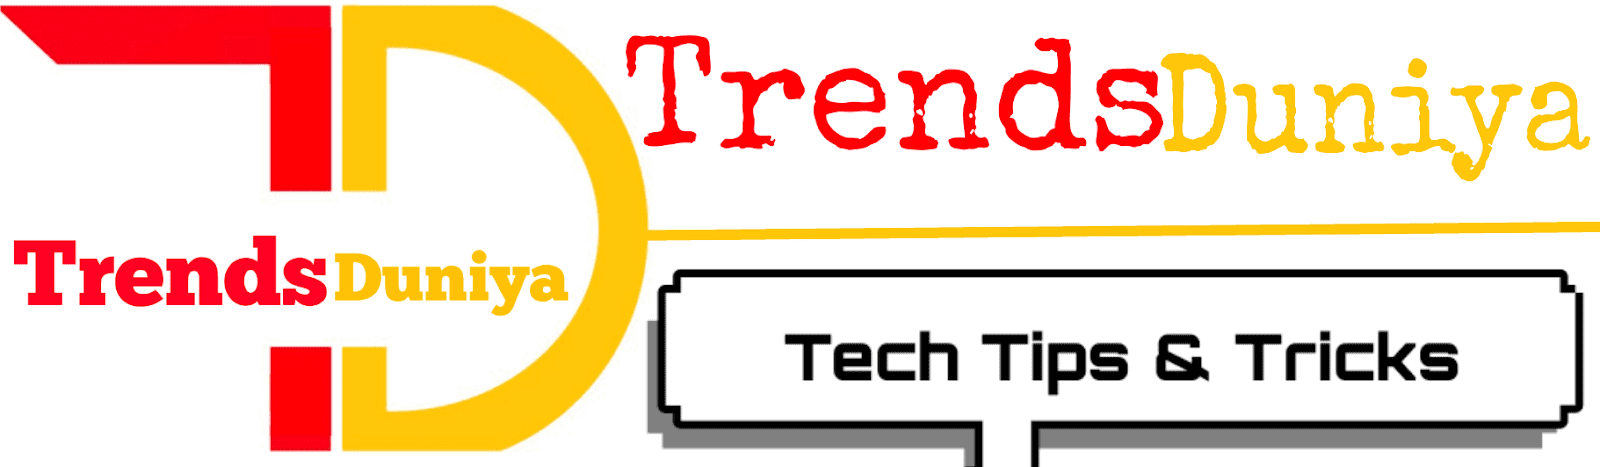 Trendsduniya » Tech Tips & Tricks Hindi Me!!